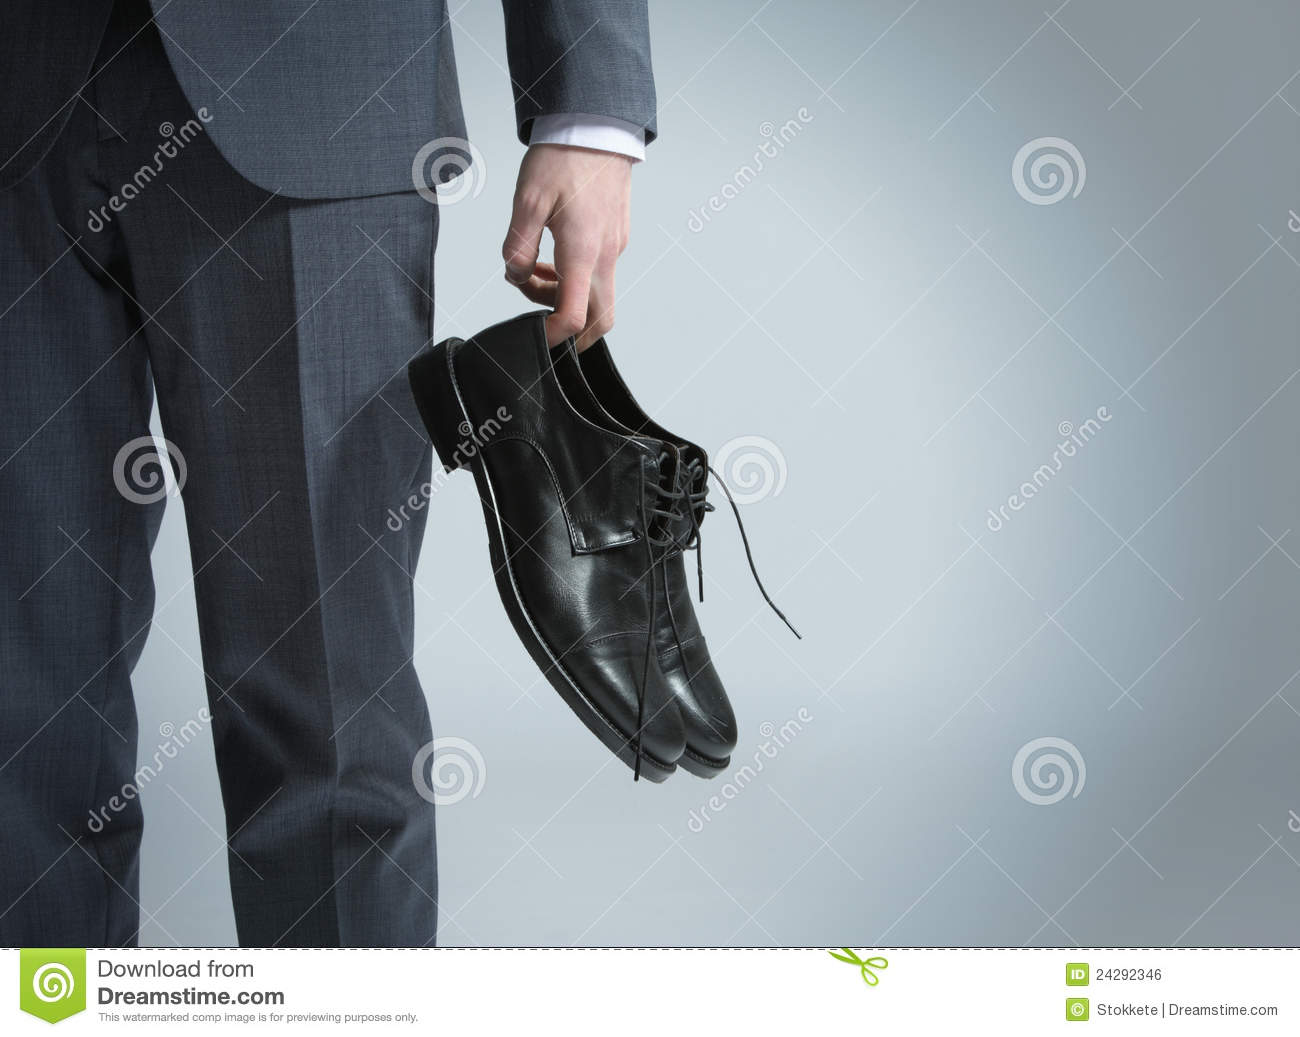 Technology Management Image: Businessman Holding The Shoes In Hand, Stock Photo